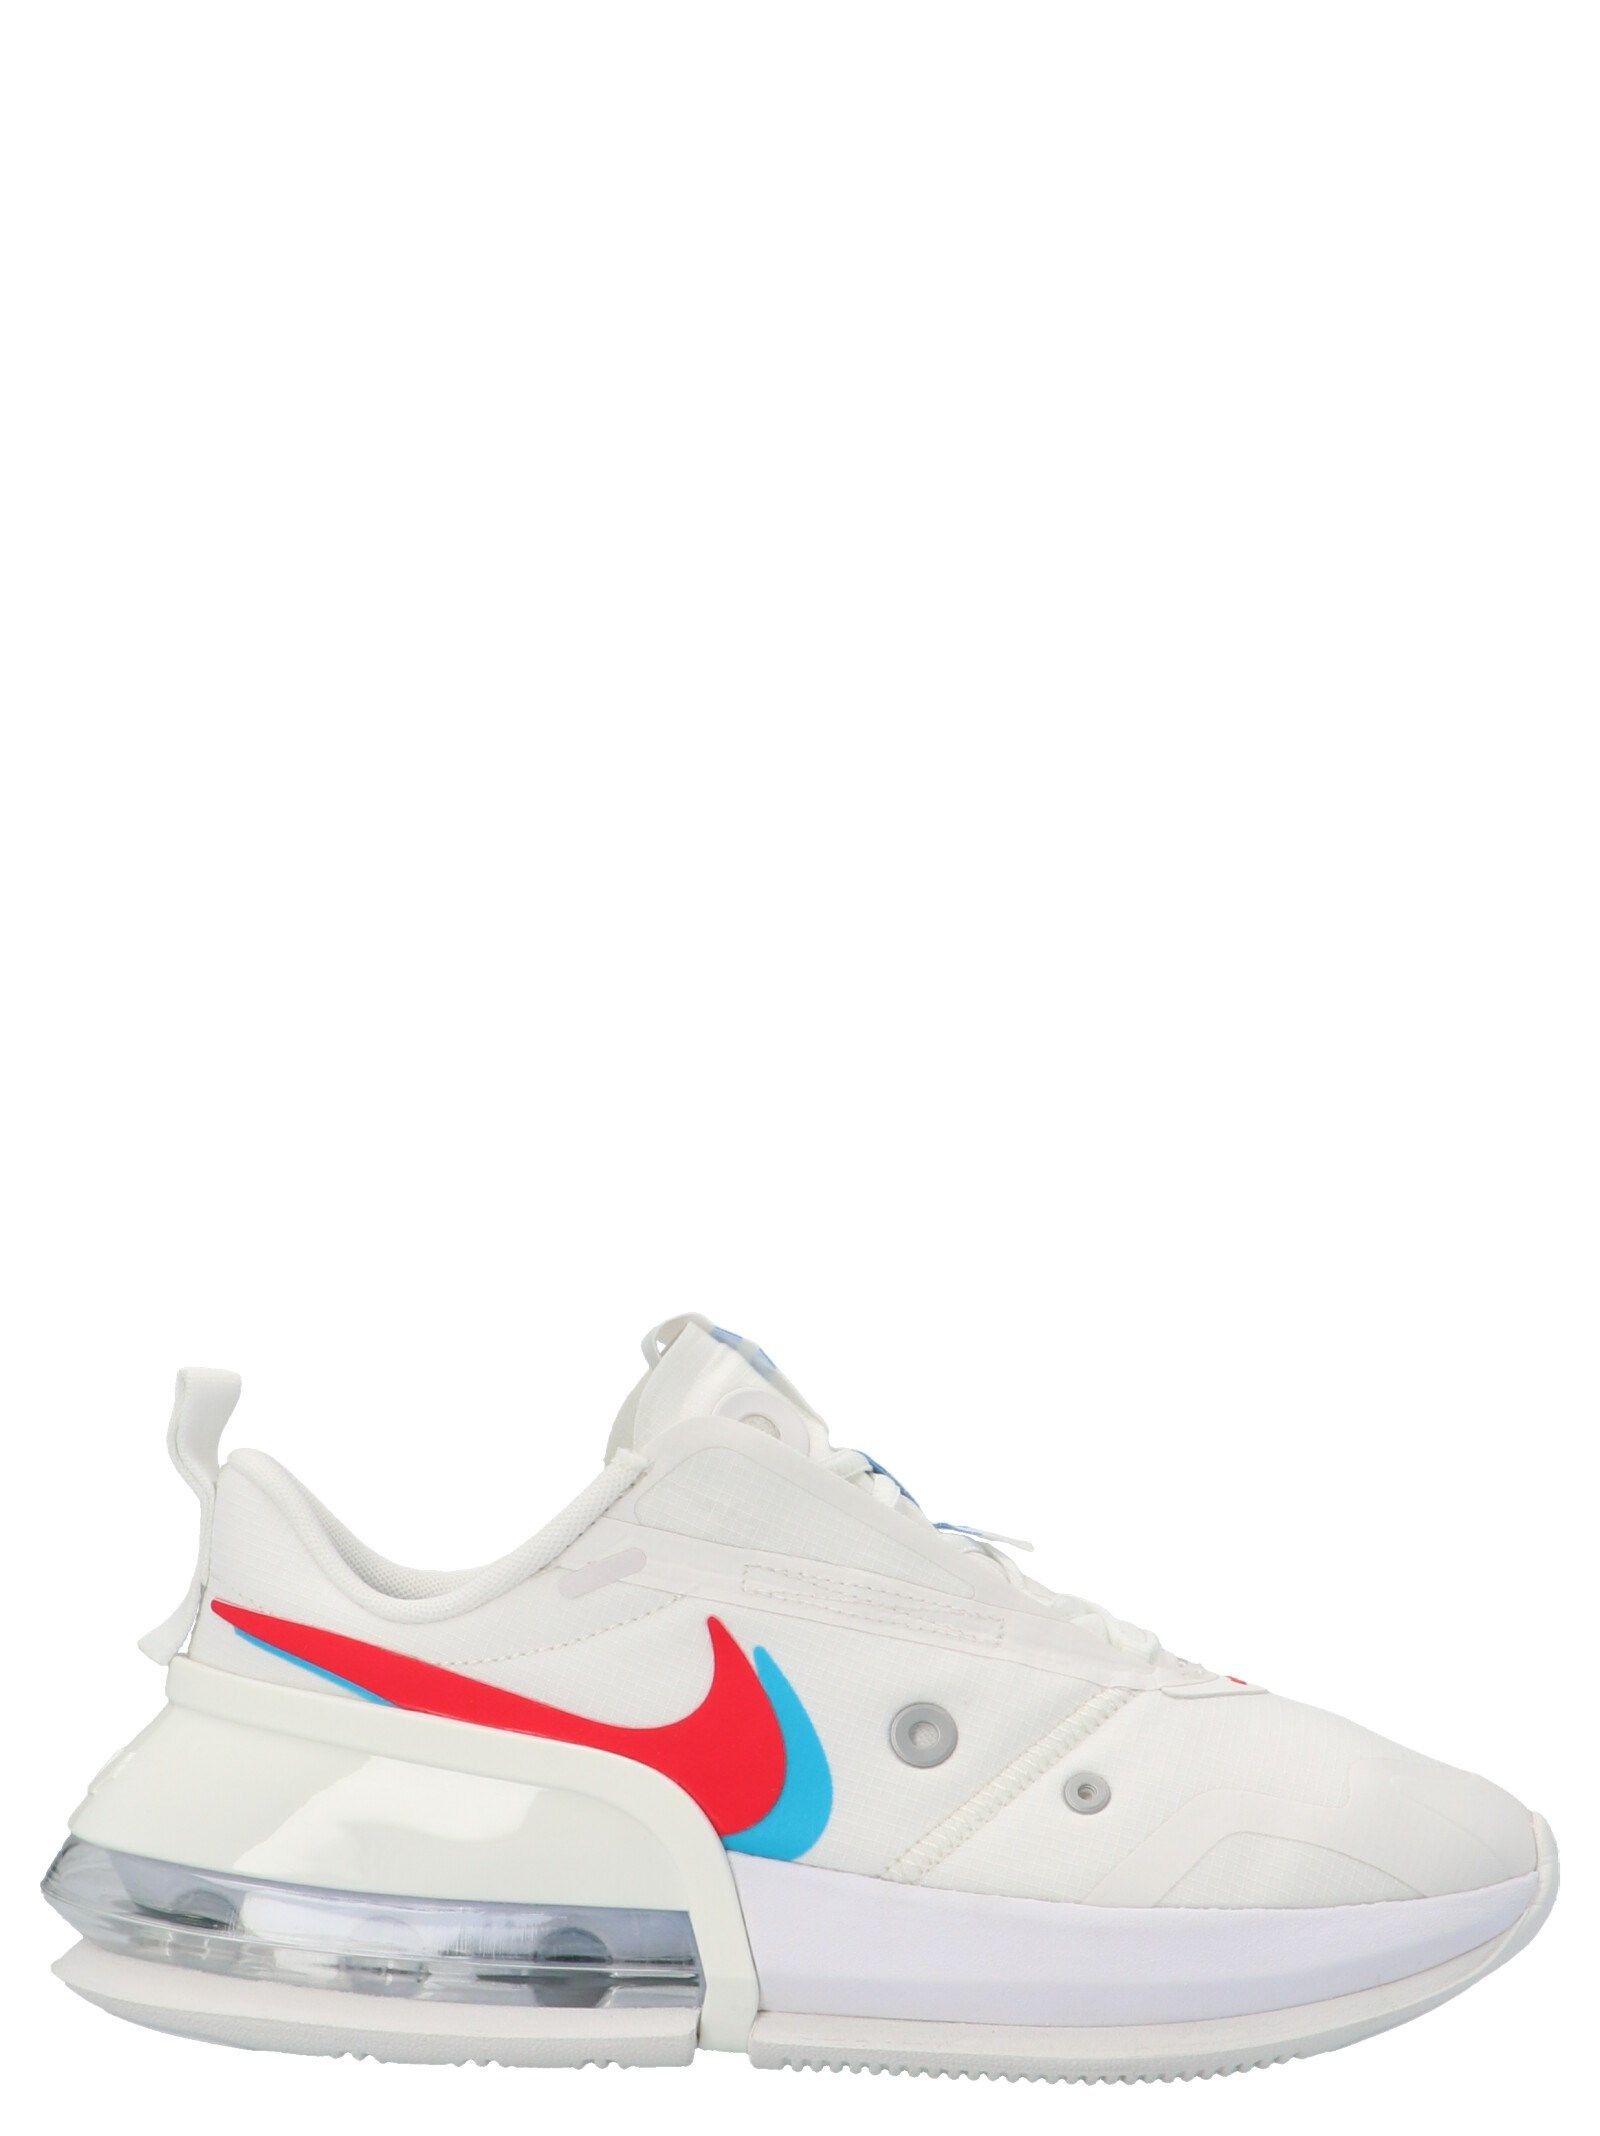 Nike Sneakers NIKE WOMEN'S CW5346100 MULTICOLOR OTHER MATERIALS SNEAKERS